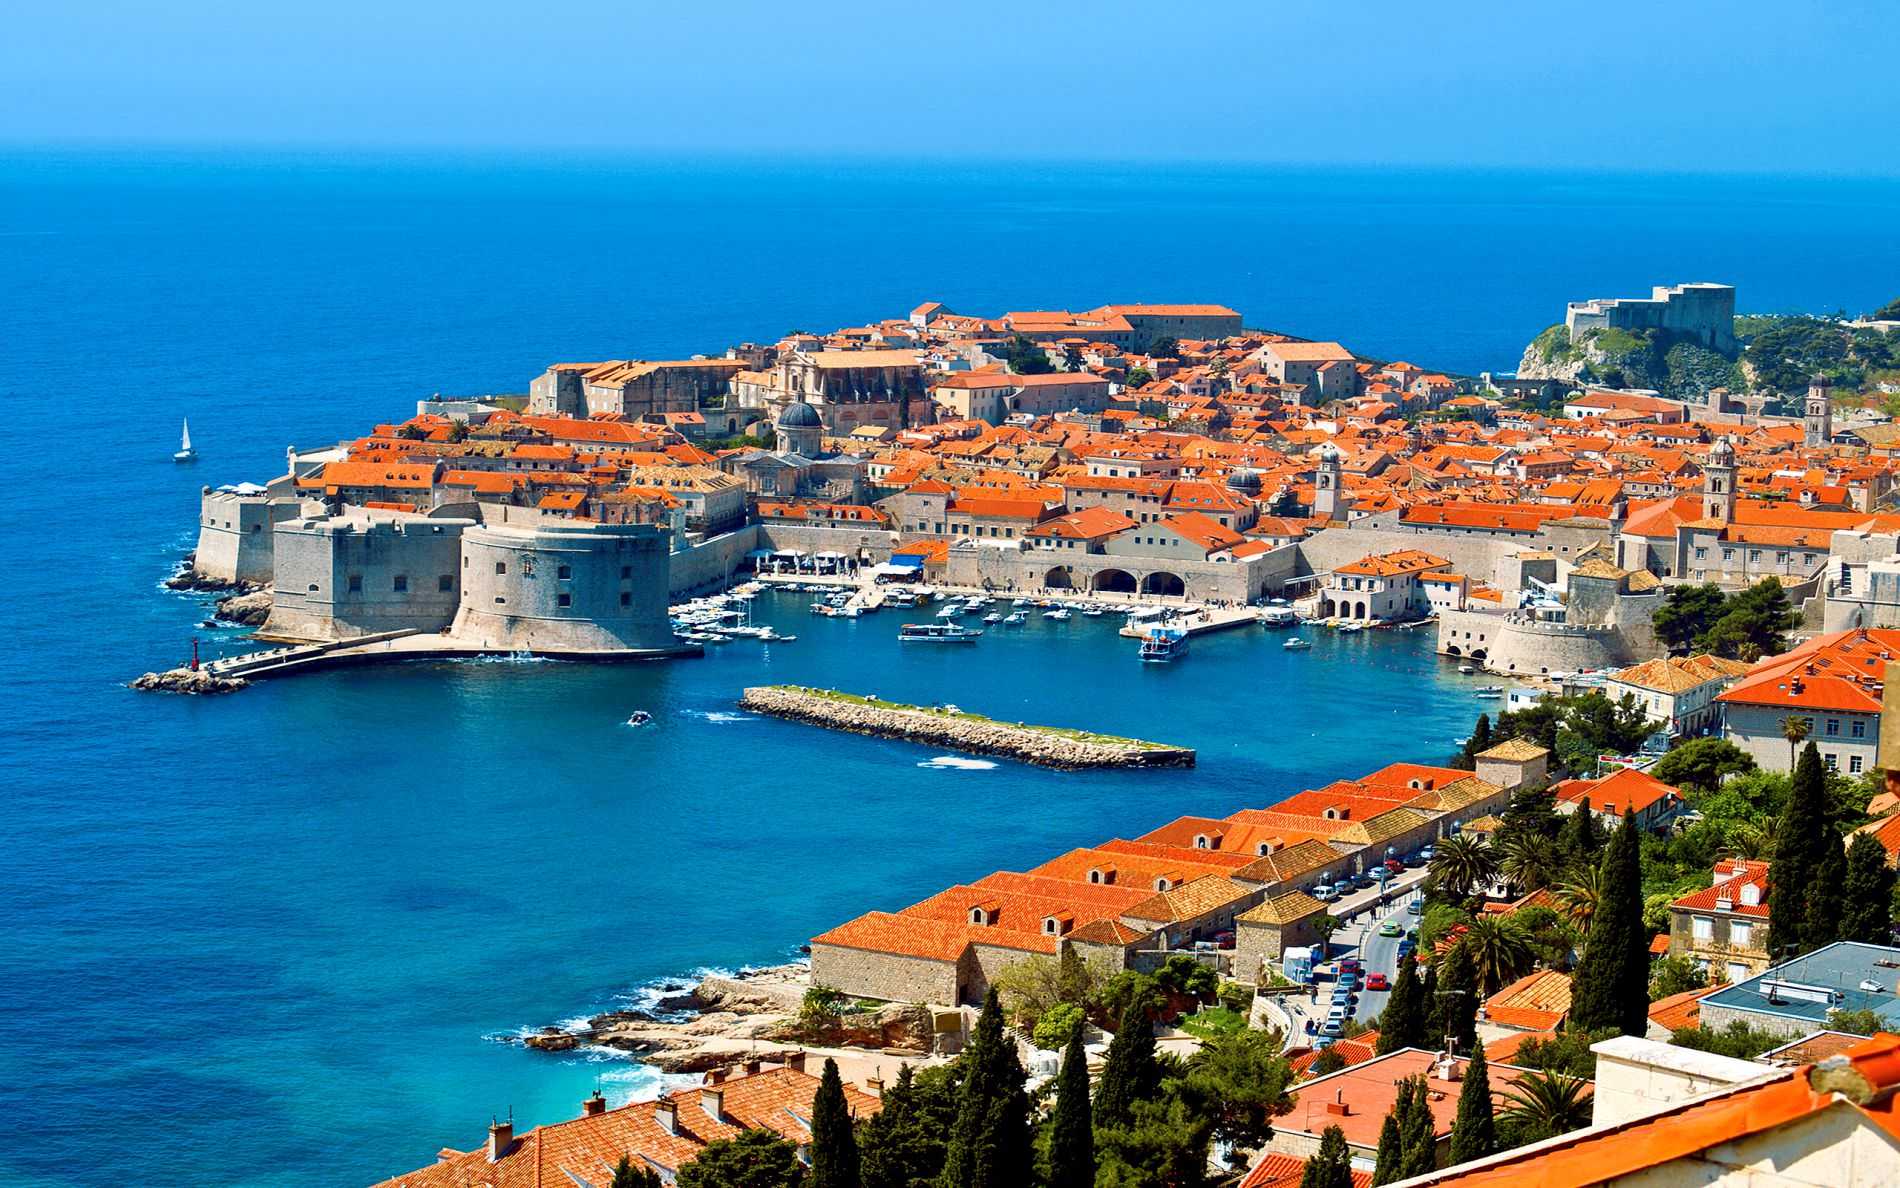 Yacht Charter in Dubrovnik